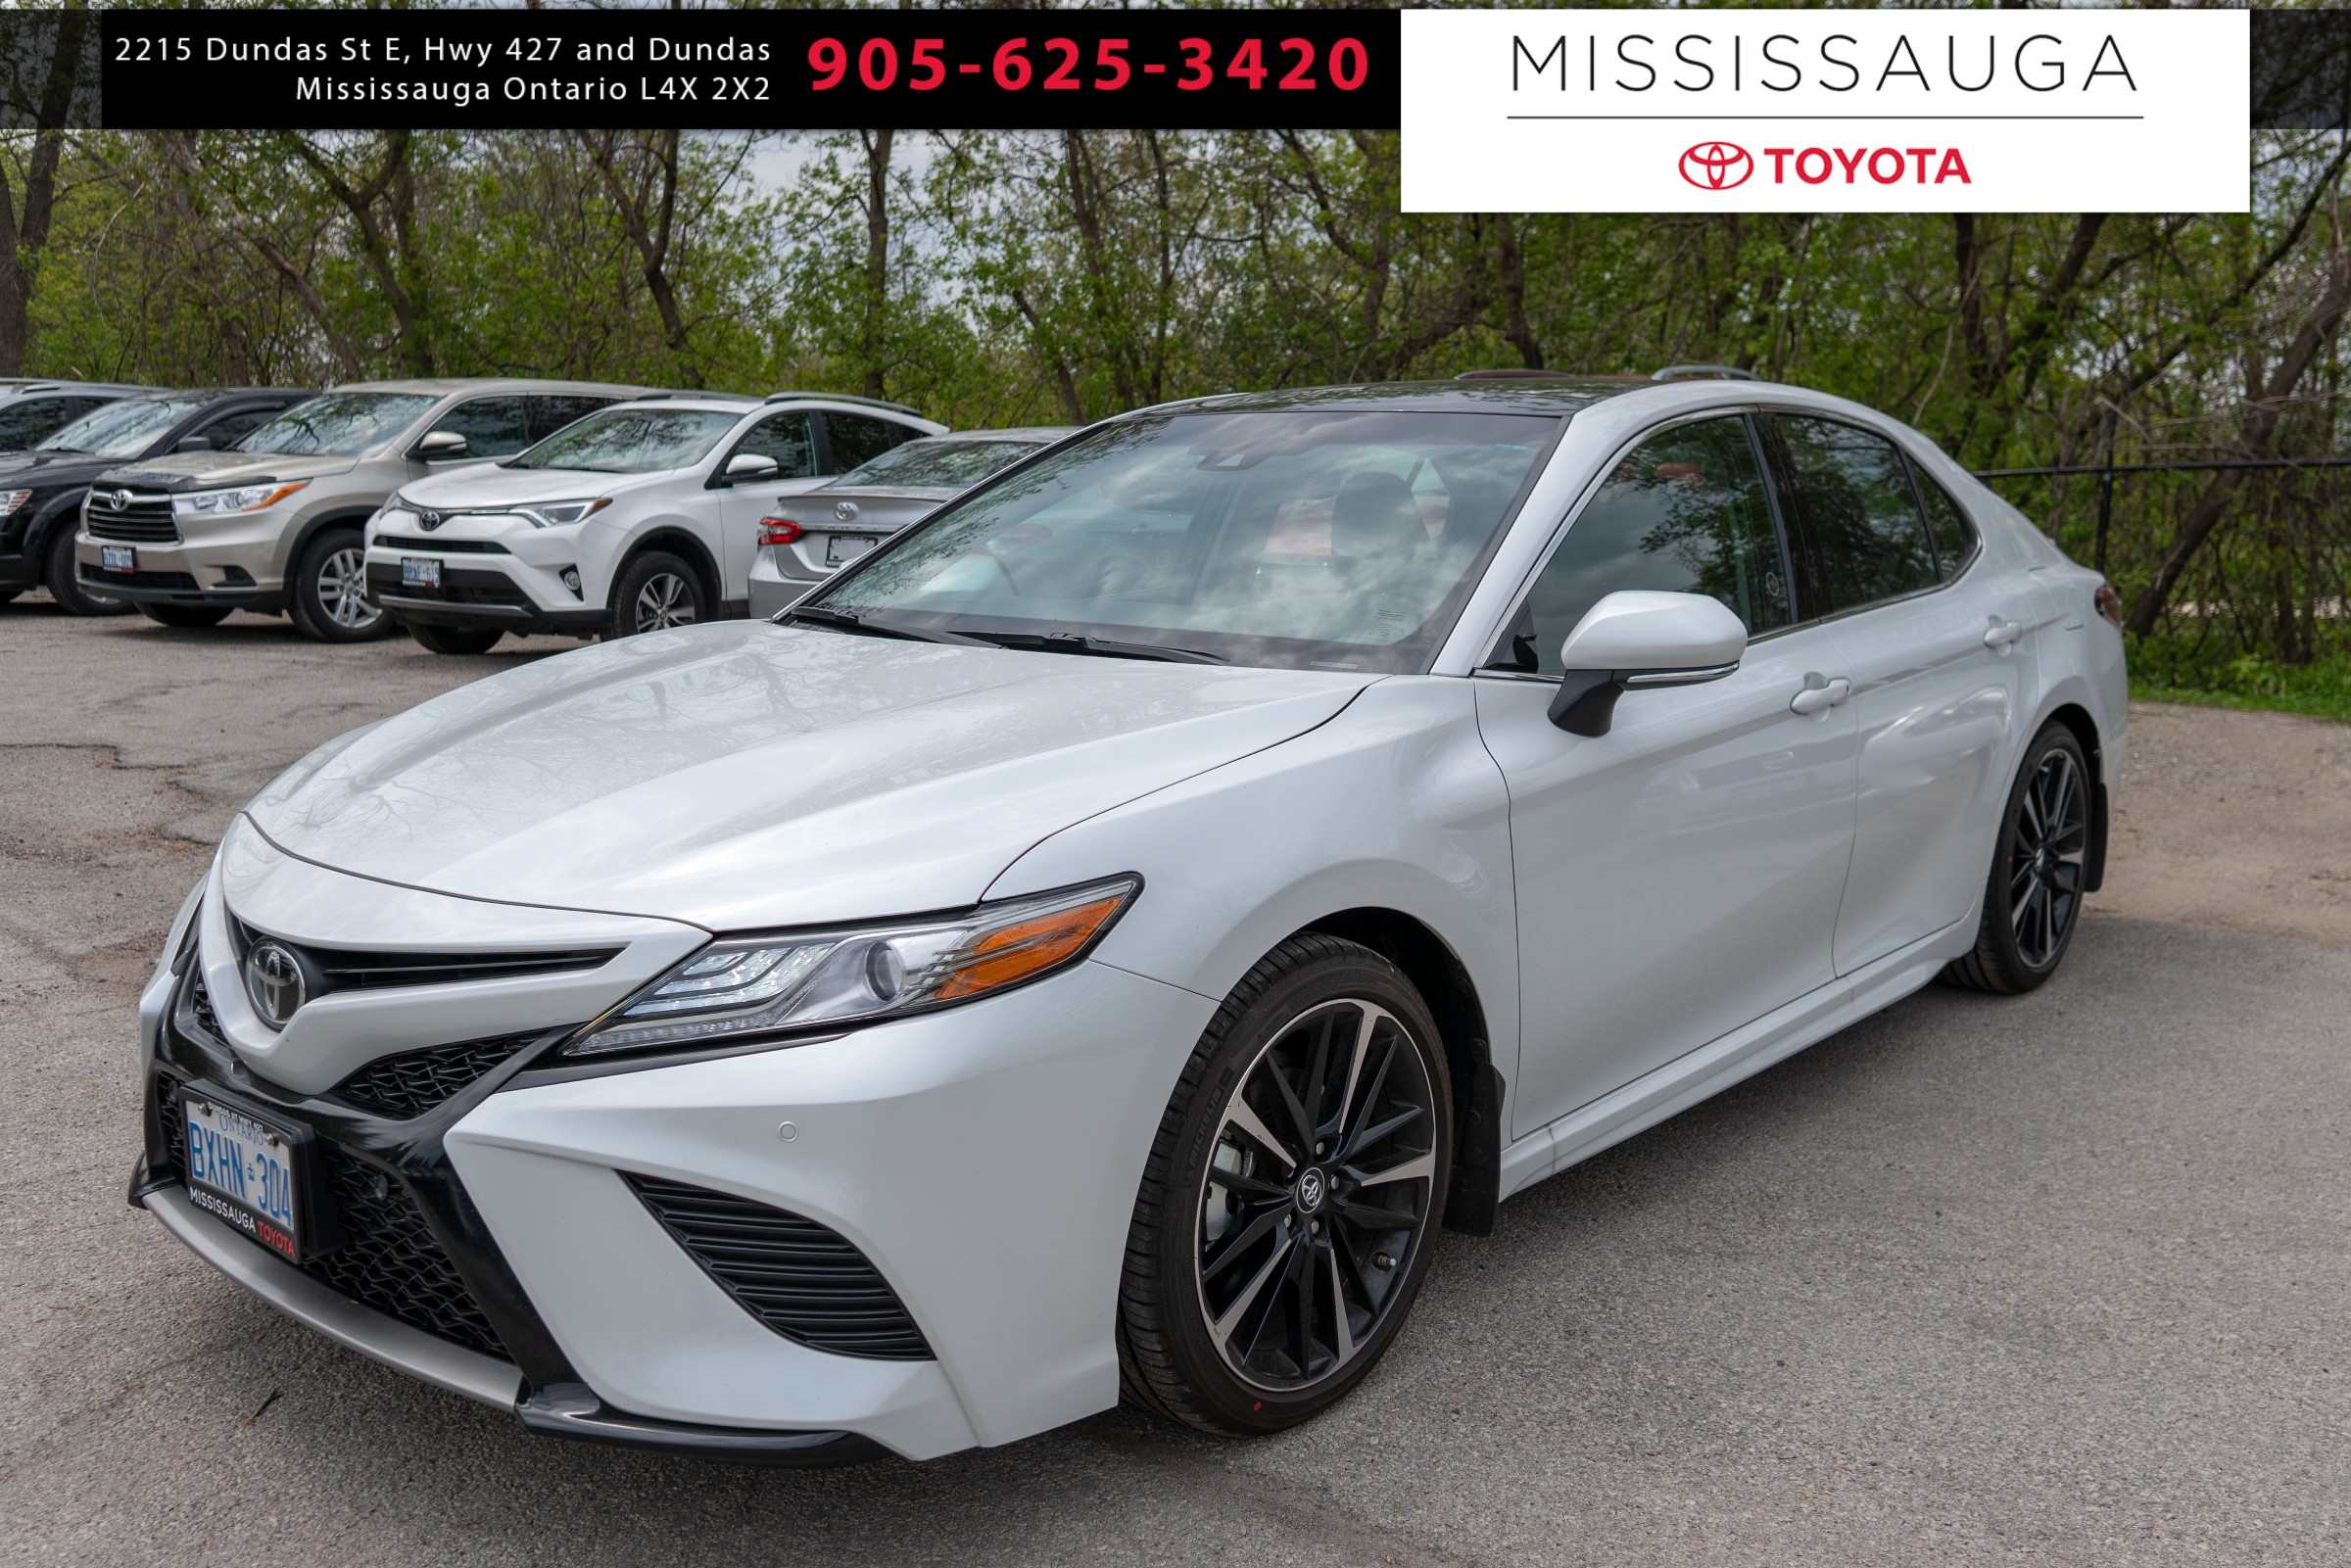 2018 Toyota Camry XSE For Sale in Kitchener, ON - CarGurus